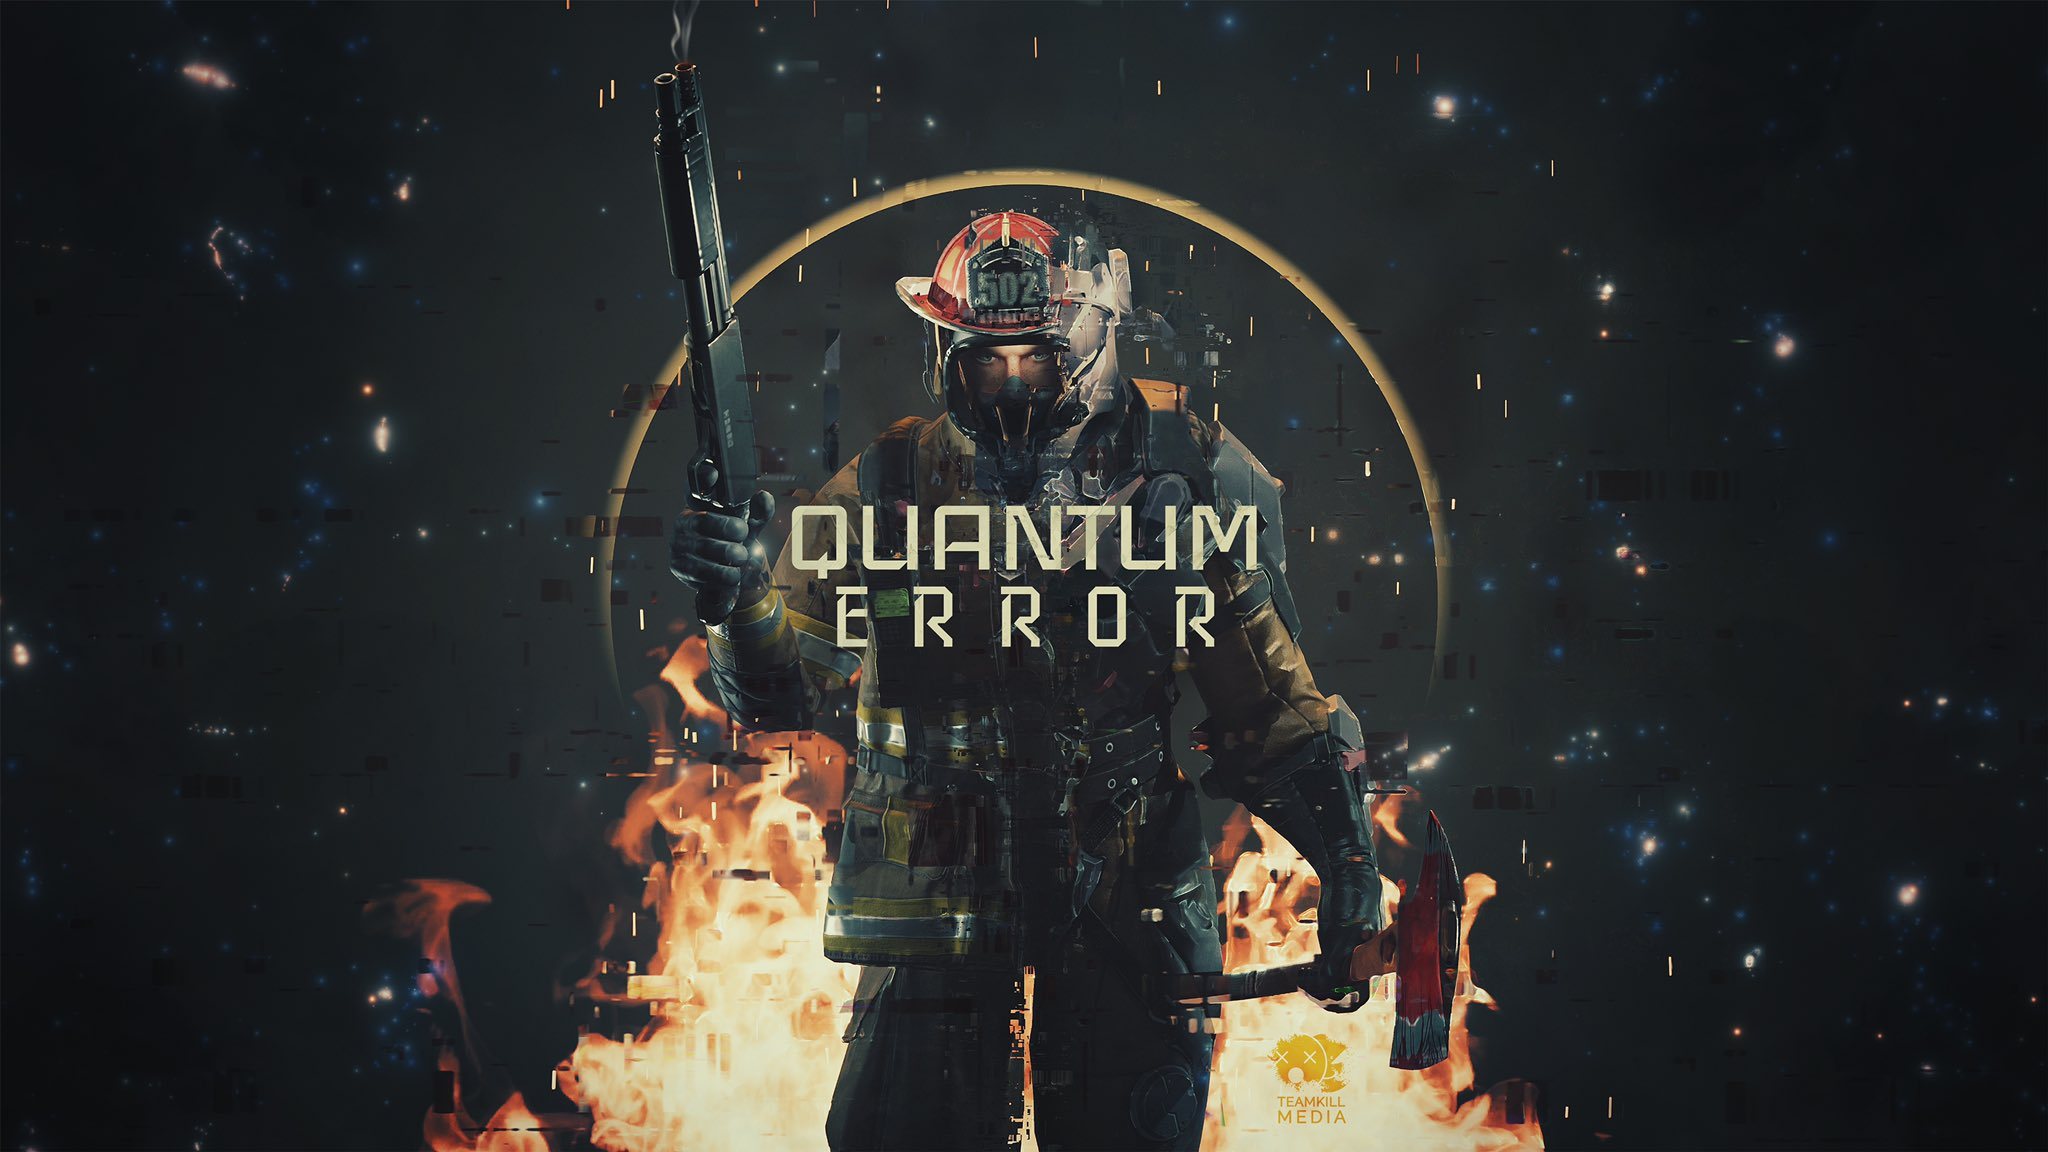 Quantum Error trailer is all about fire and zombies